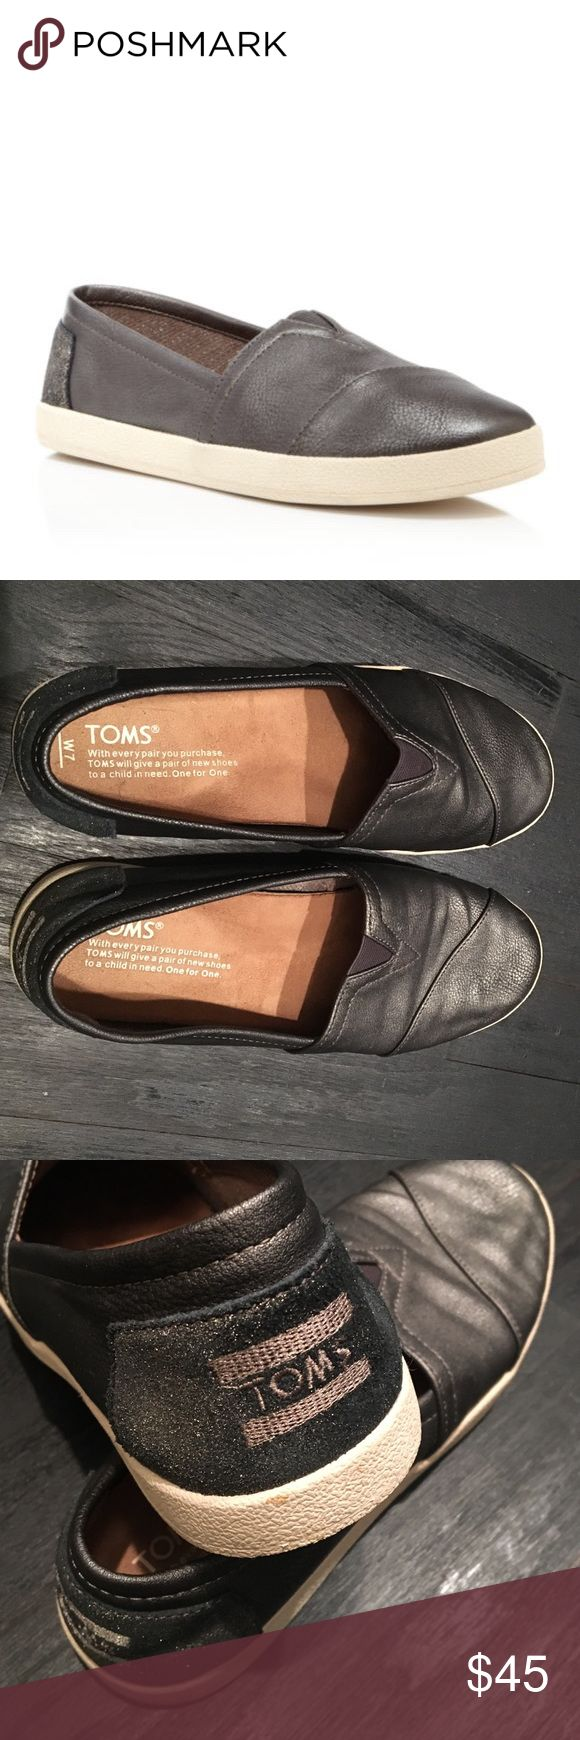 Toms avalon metallic sneaker Toms avalon metallic gunmetal color sneaker. Size 7. Worn a few times. Perfect condition! TOMS Shoes Athletic Shoes